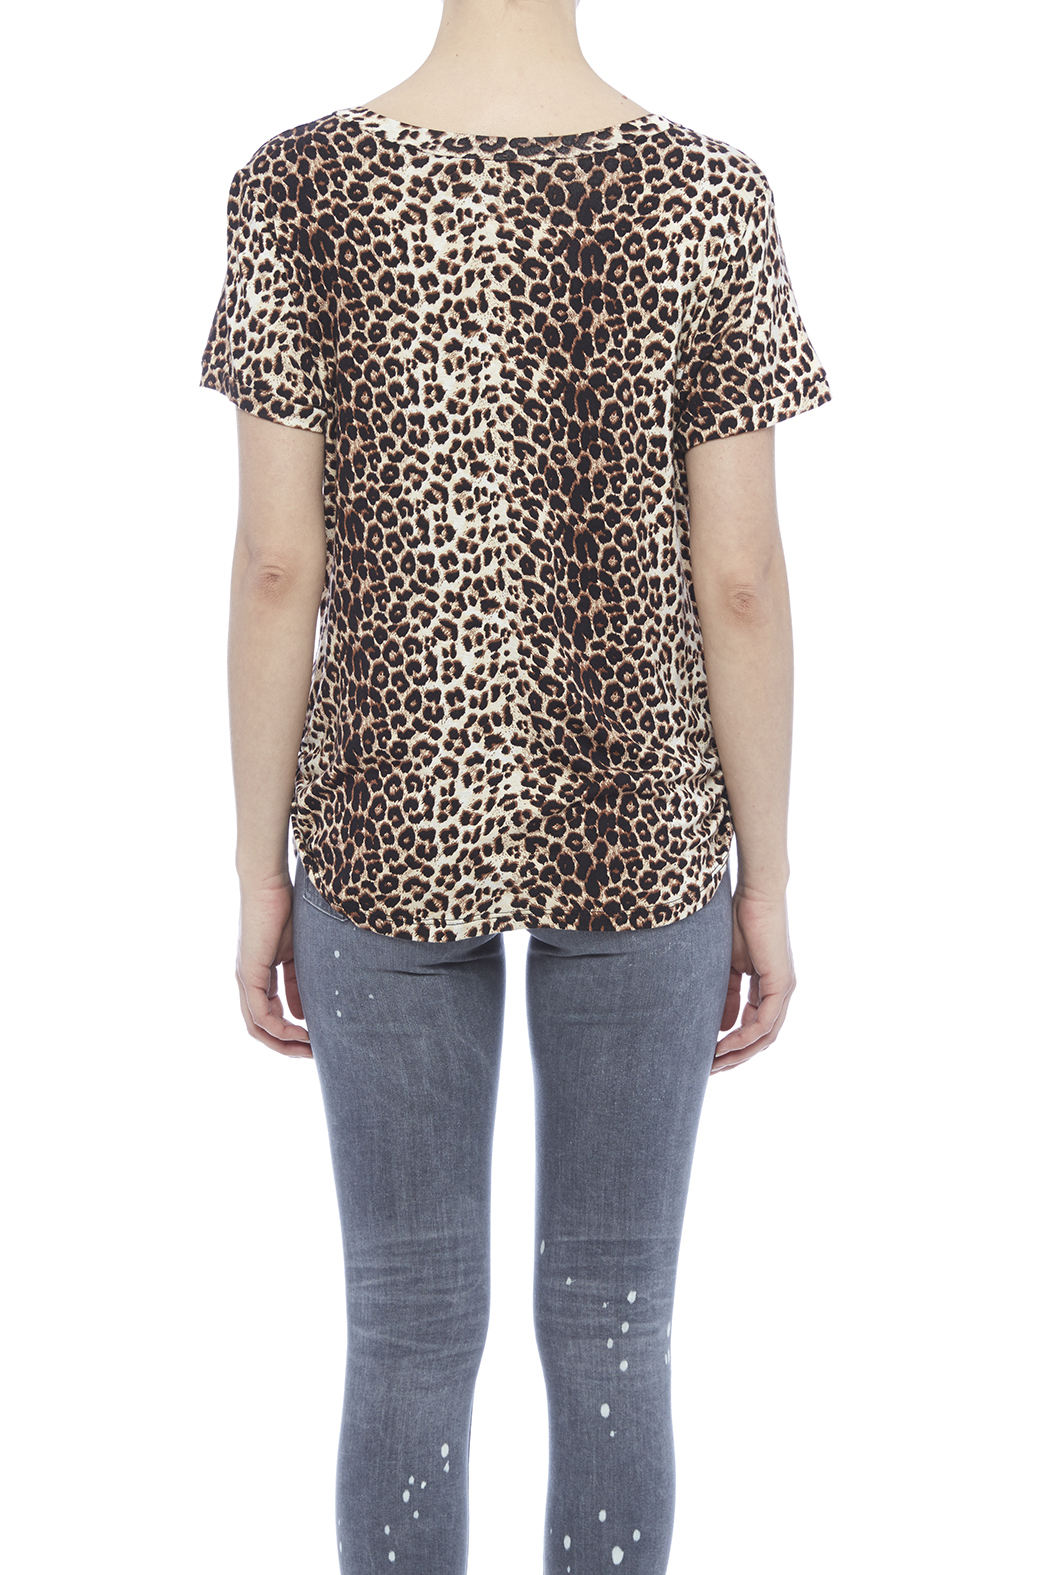 LIBIAN Leopard Print Top - Back Cropped Image